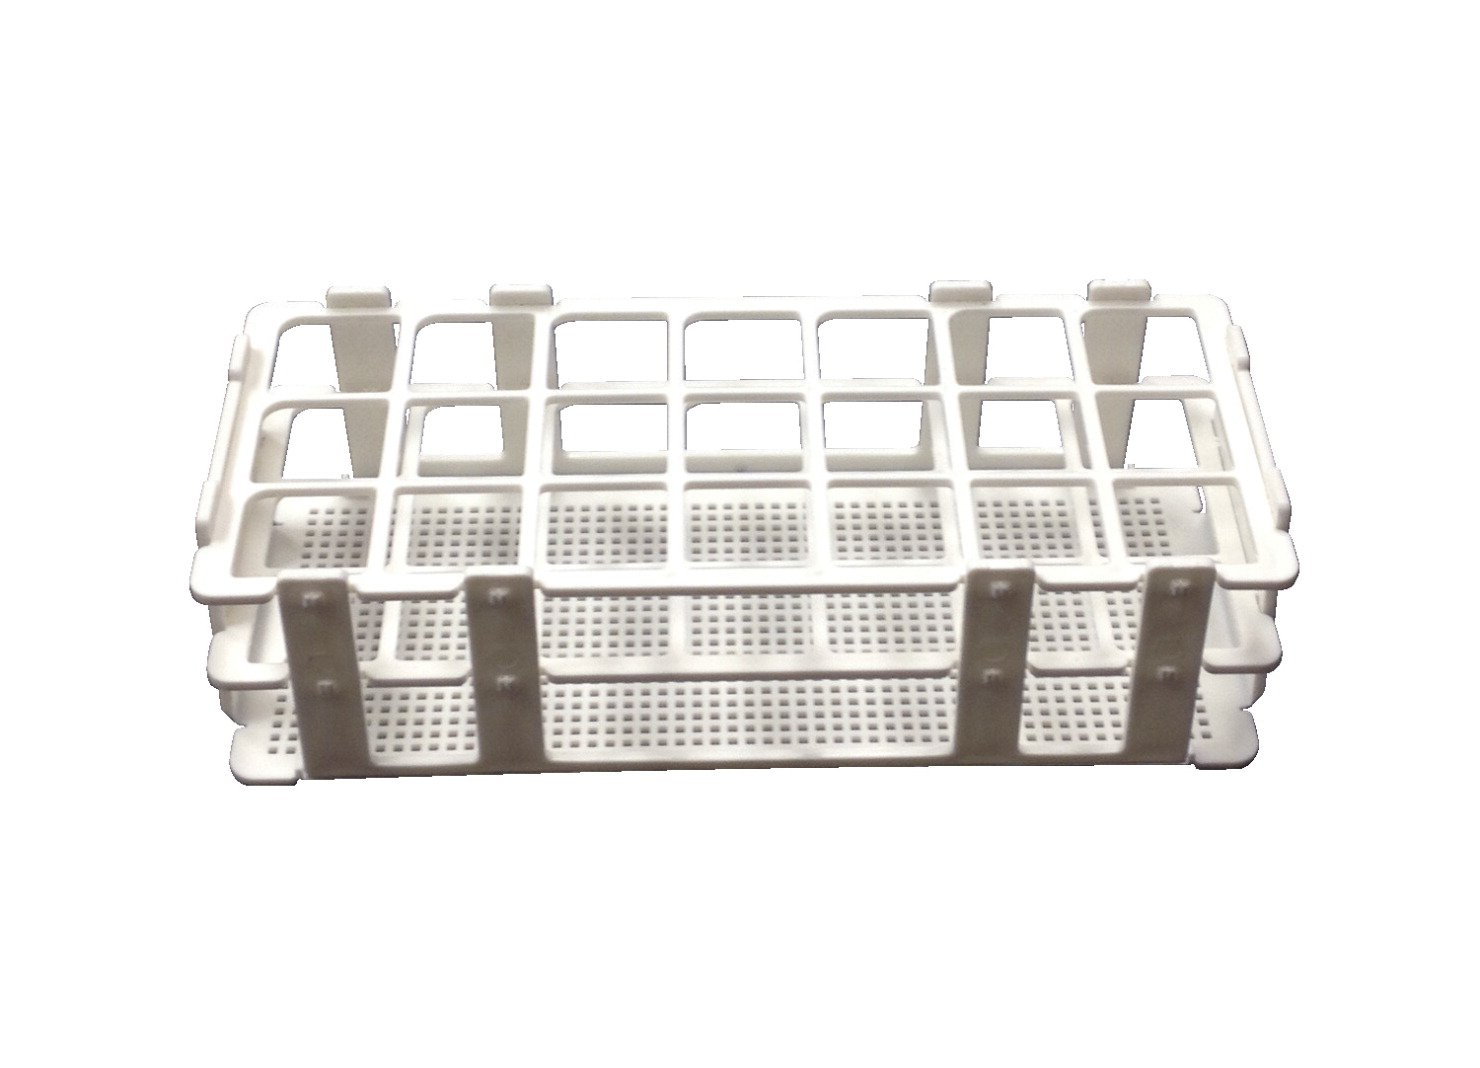 Frey Scientific No-Wire Autoclavable Polypropylene Test Tube Rack for 30mm Tube,  21 Well by Frey Scientific